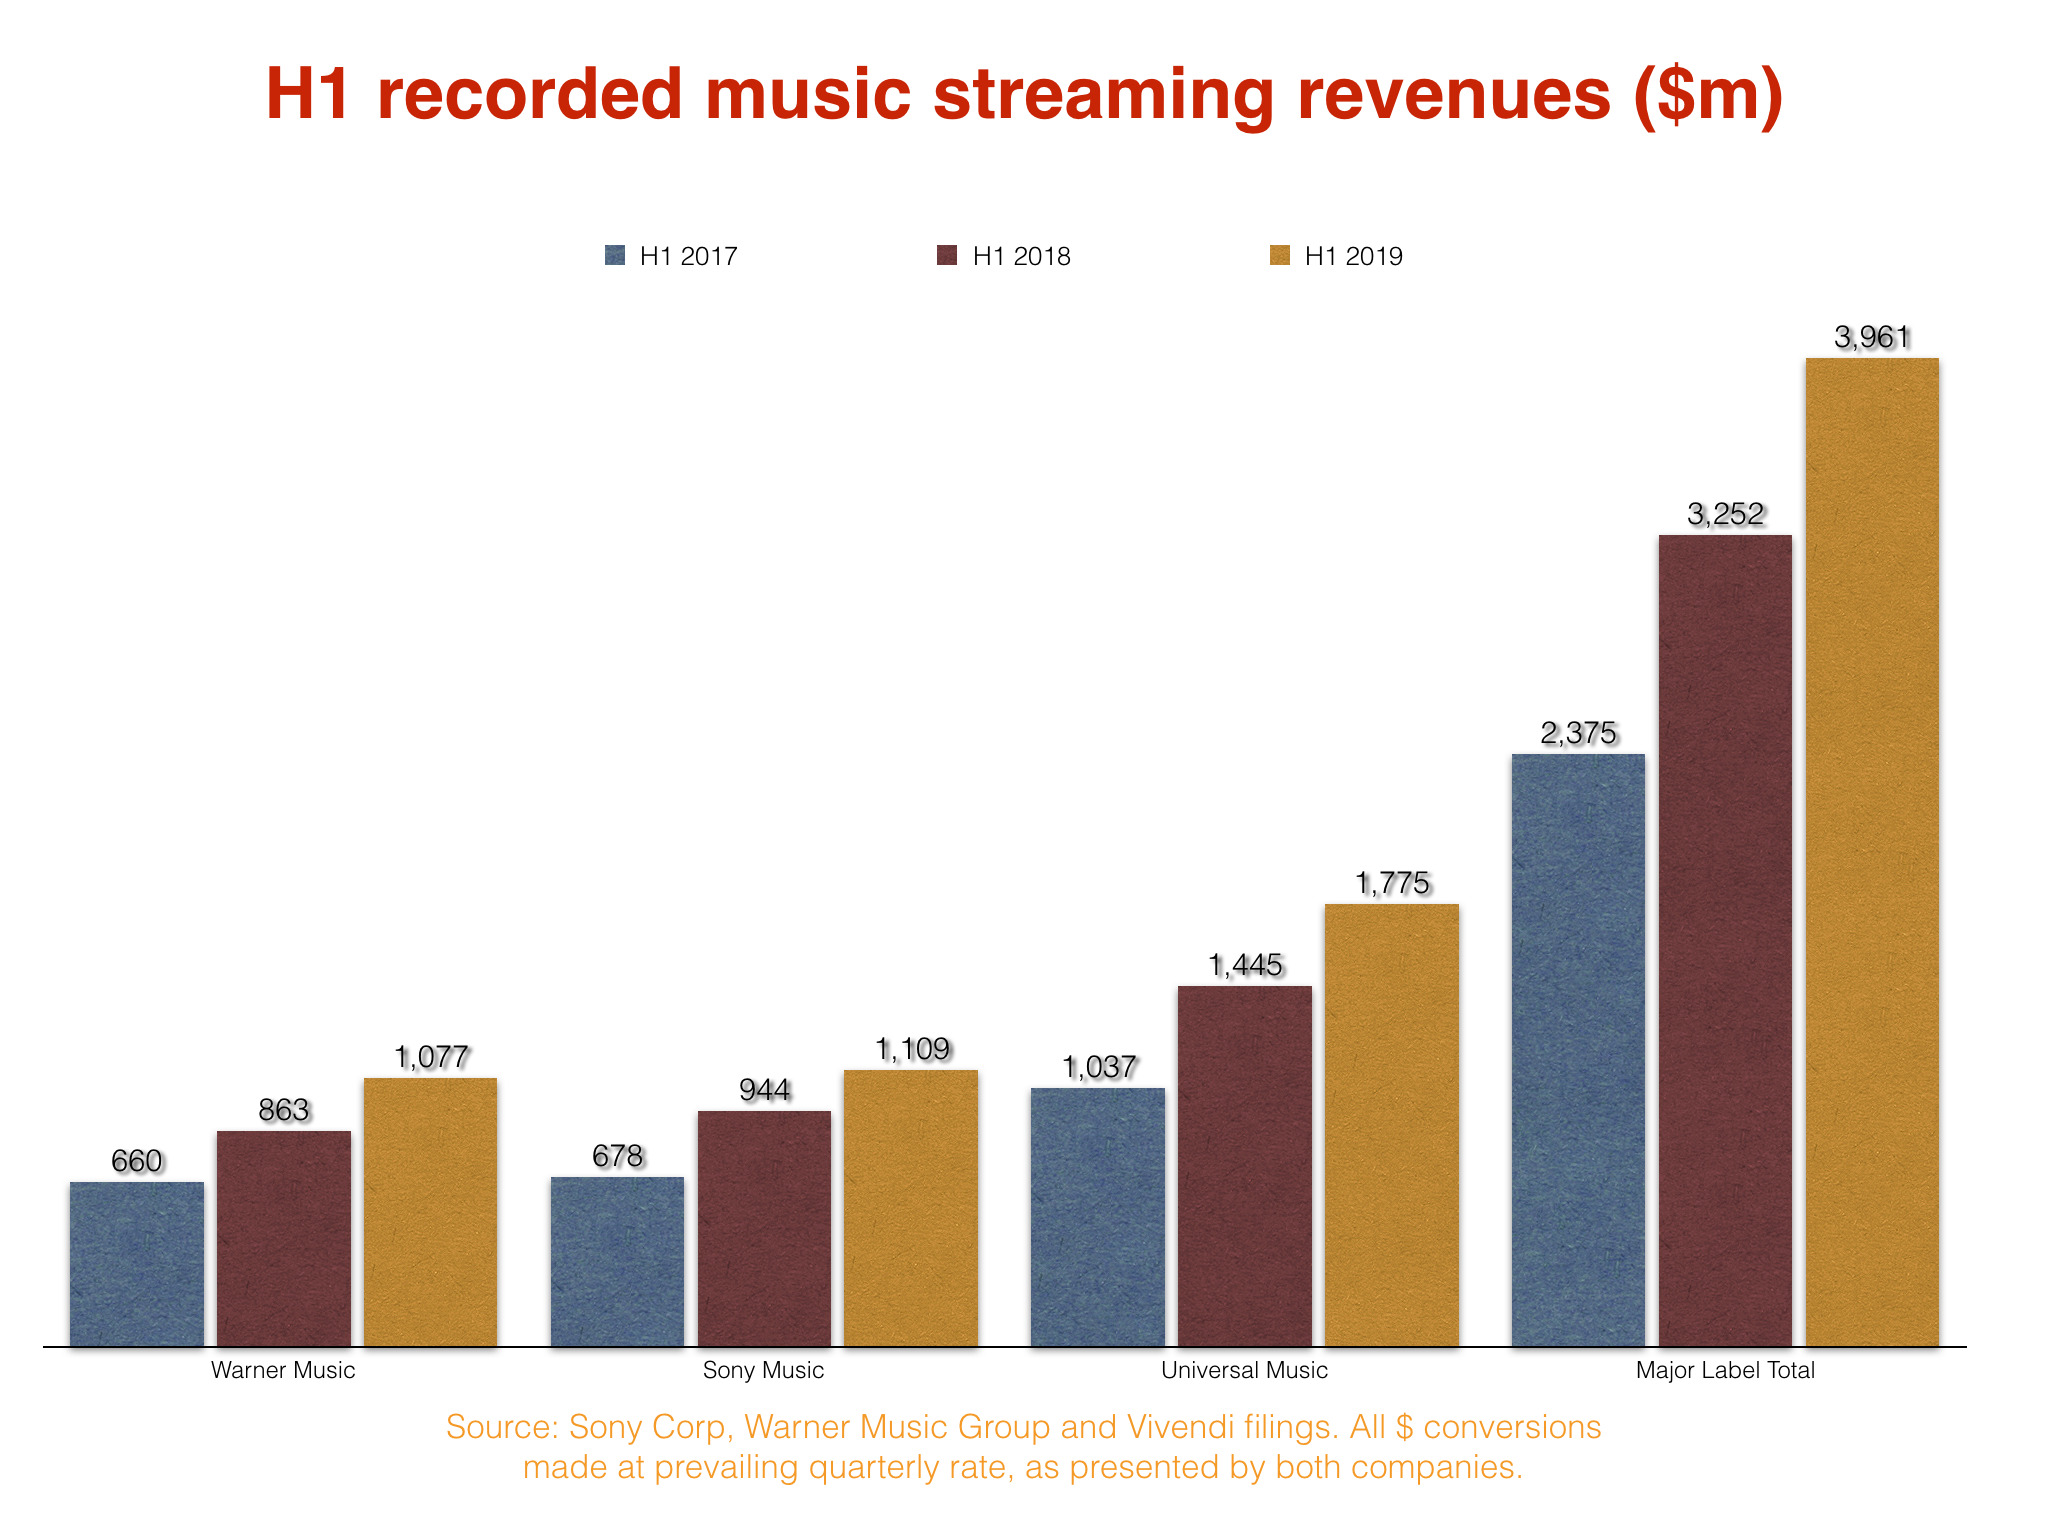 The major labels are close to generating $1m from streaming every